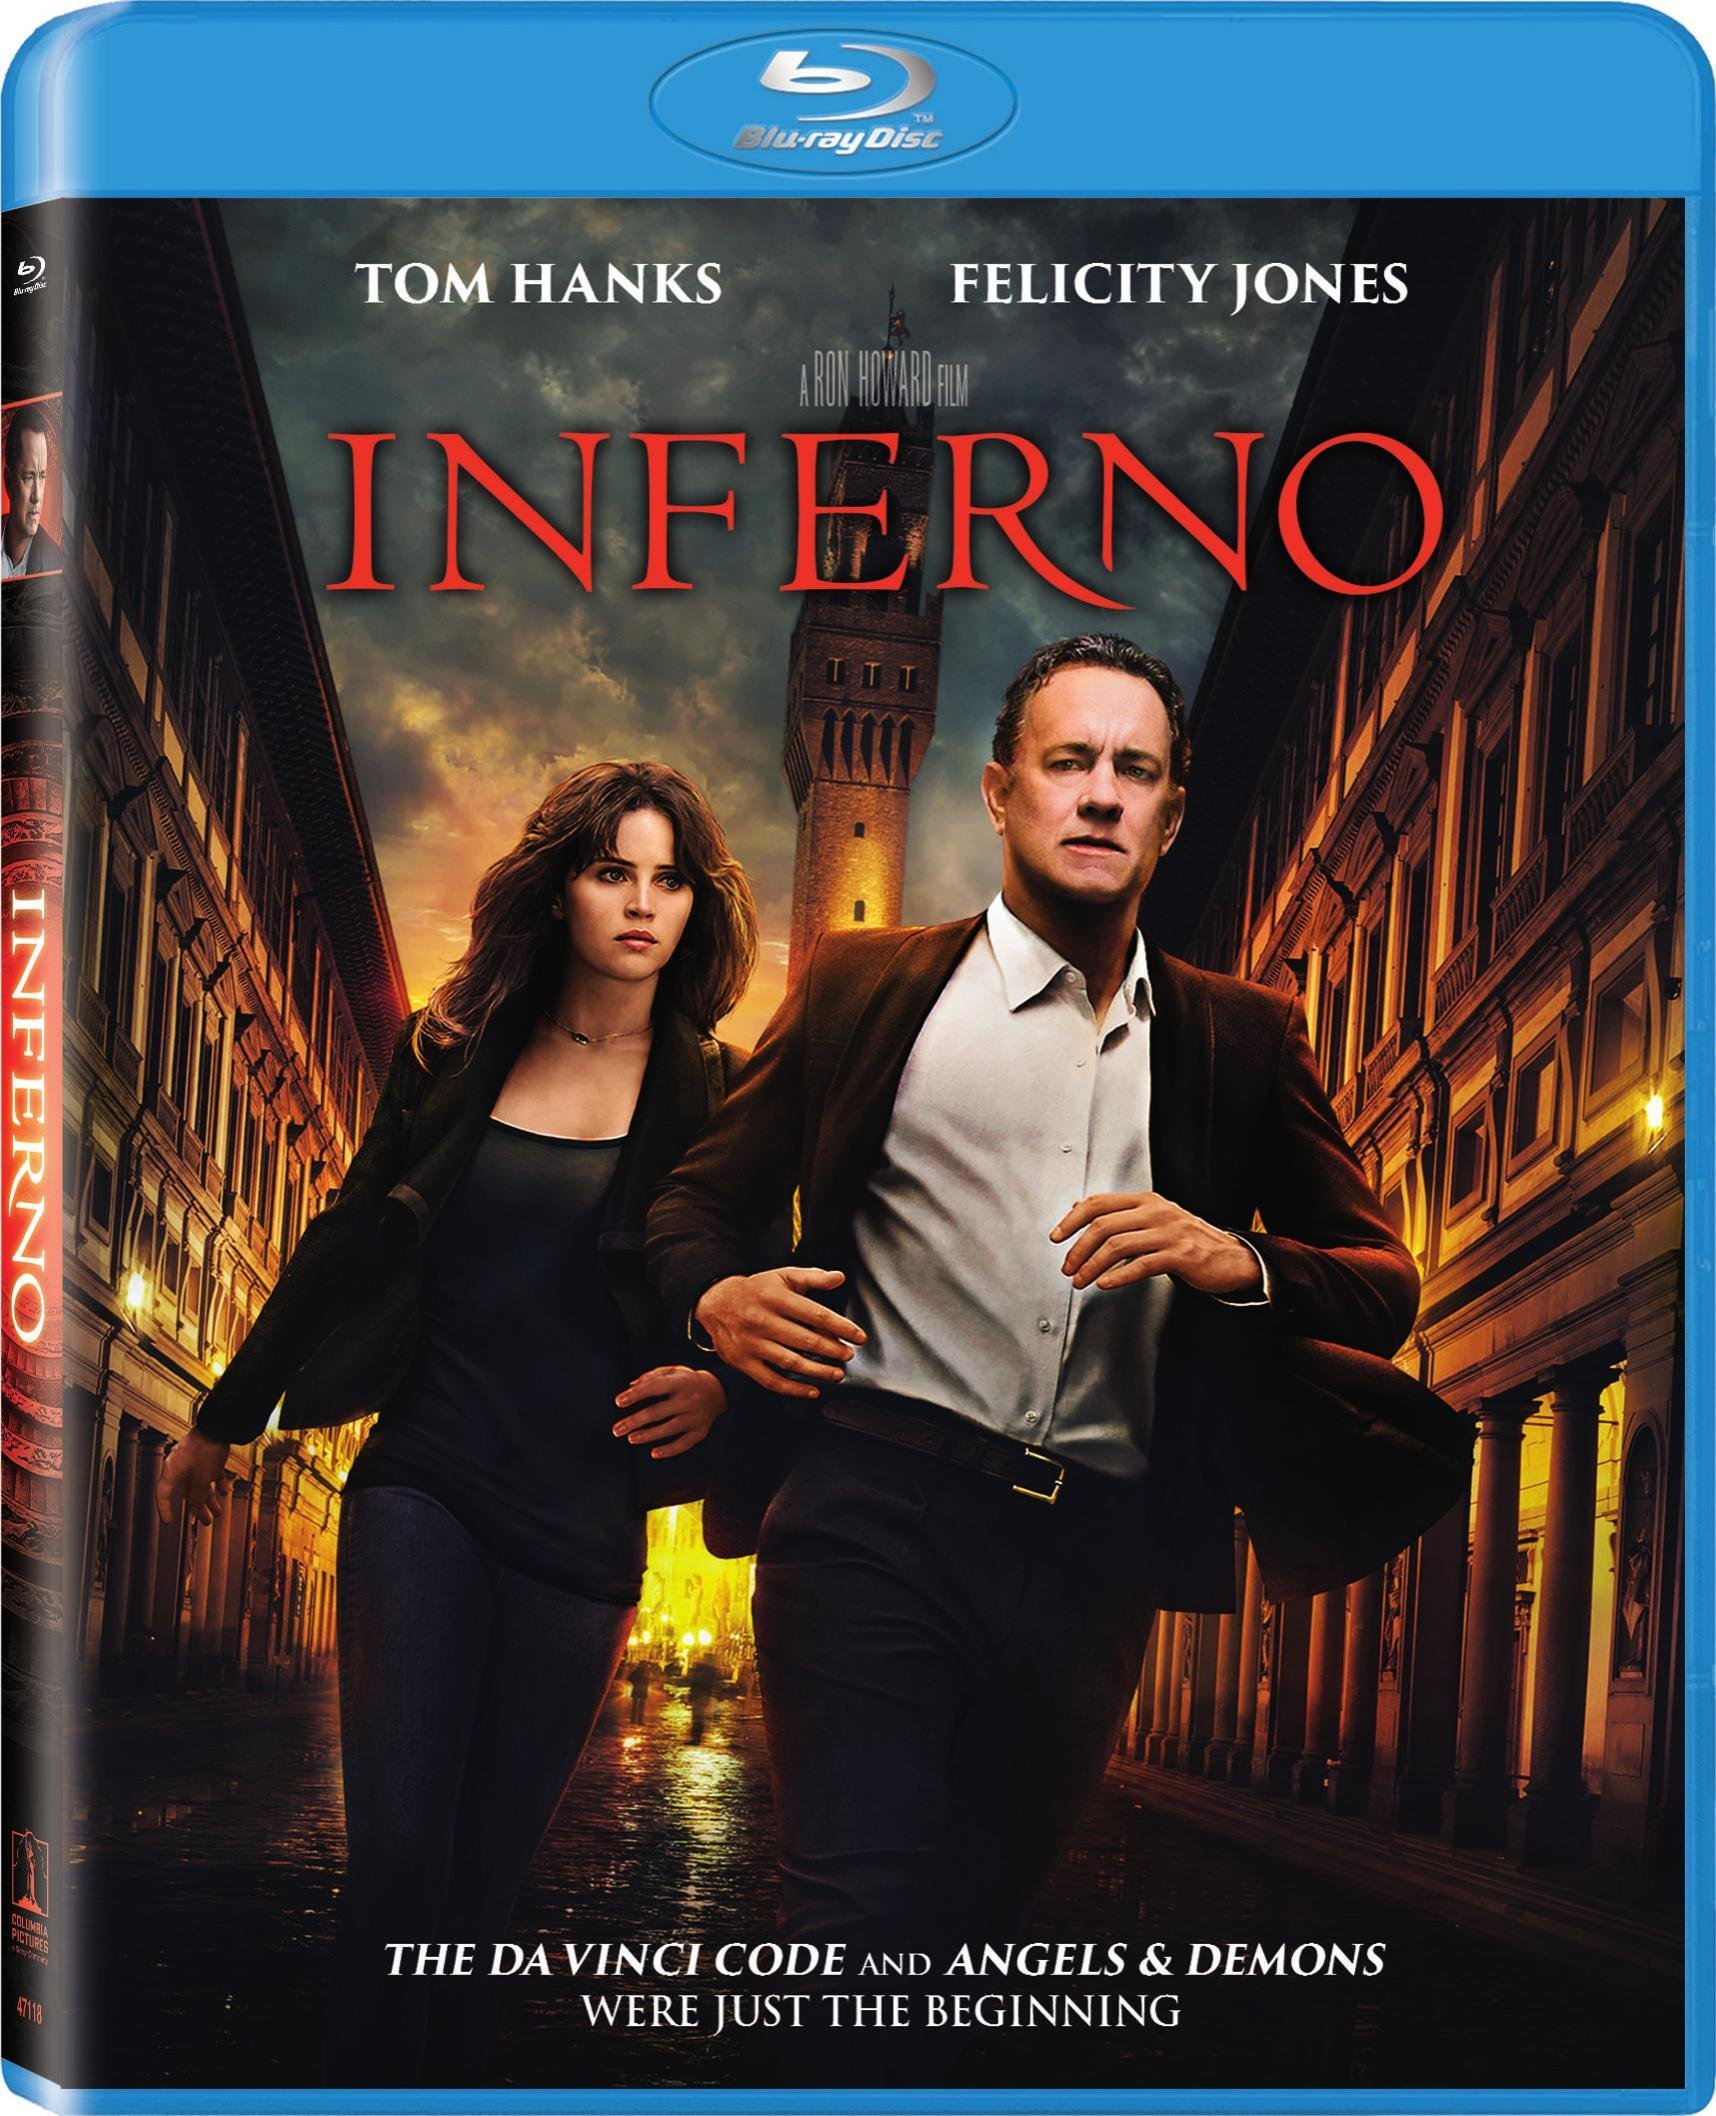 Buy Inferno Now!